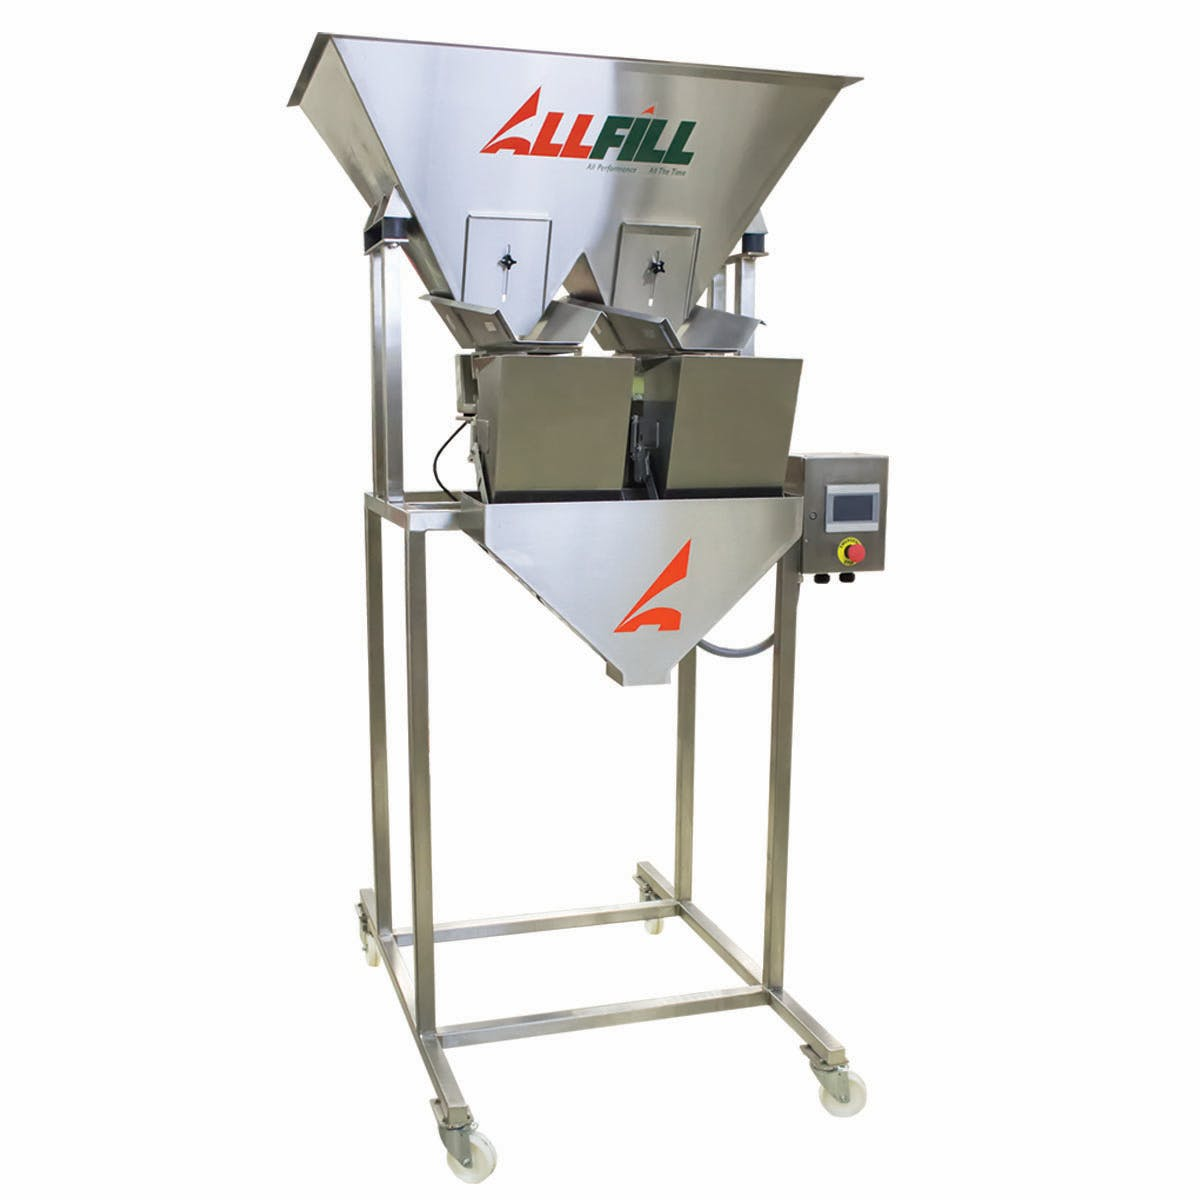 Model VF 200E 2-Lane - All-Fill Vibratory Filler Scales - sold by Package Devices LLC